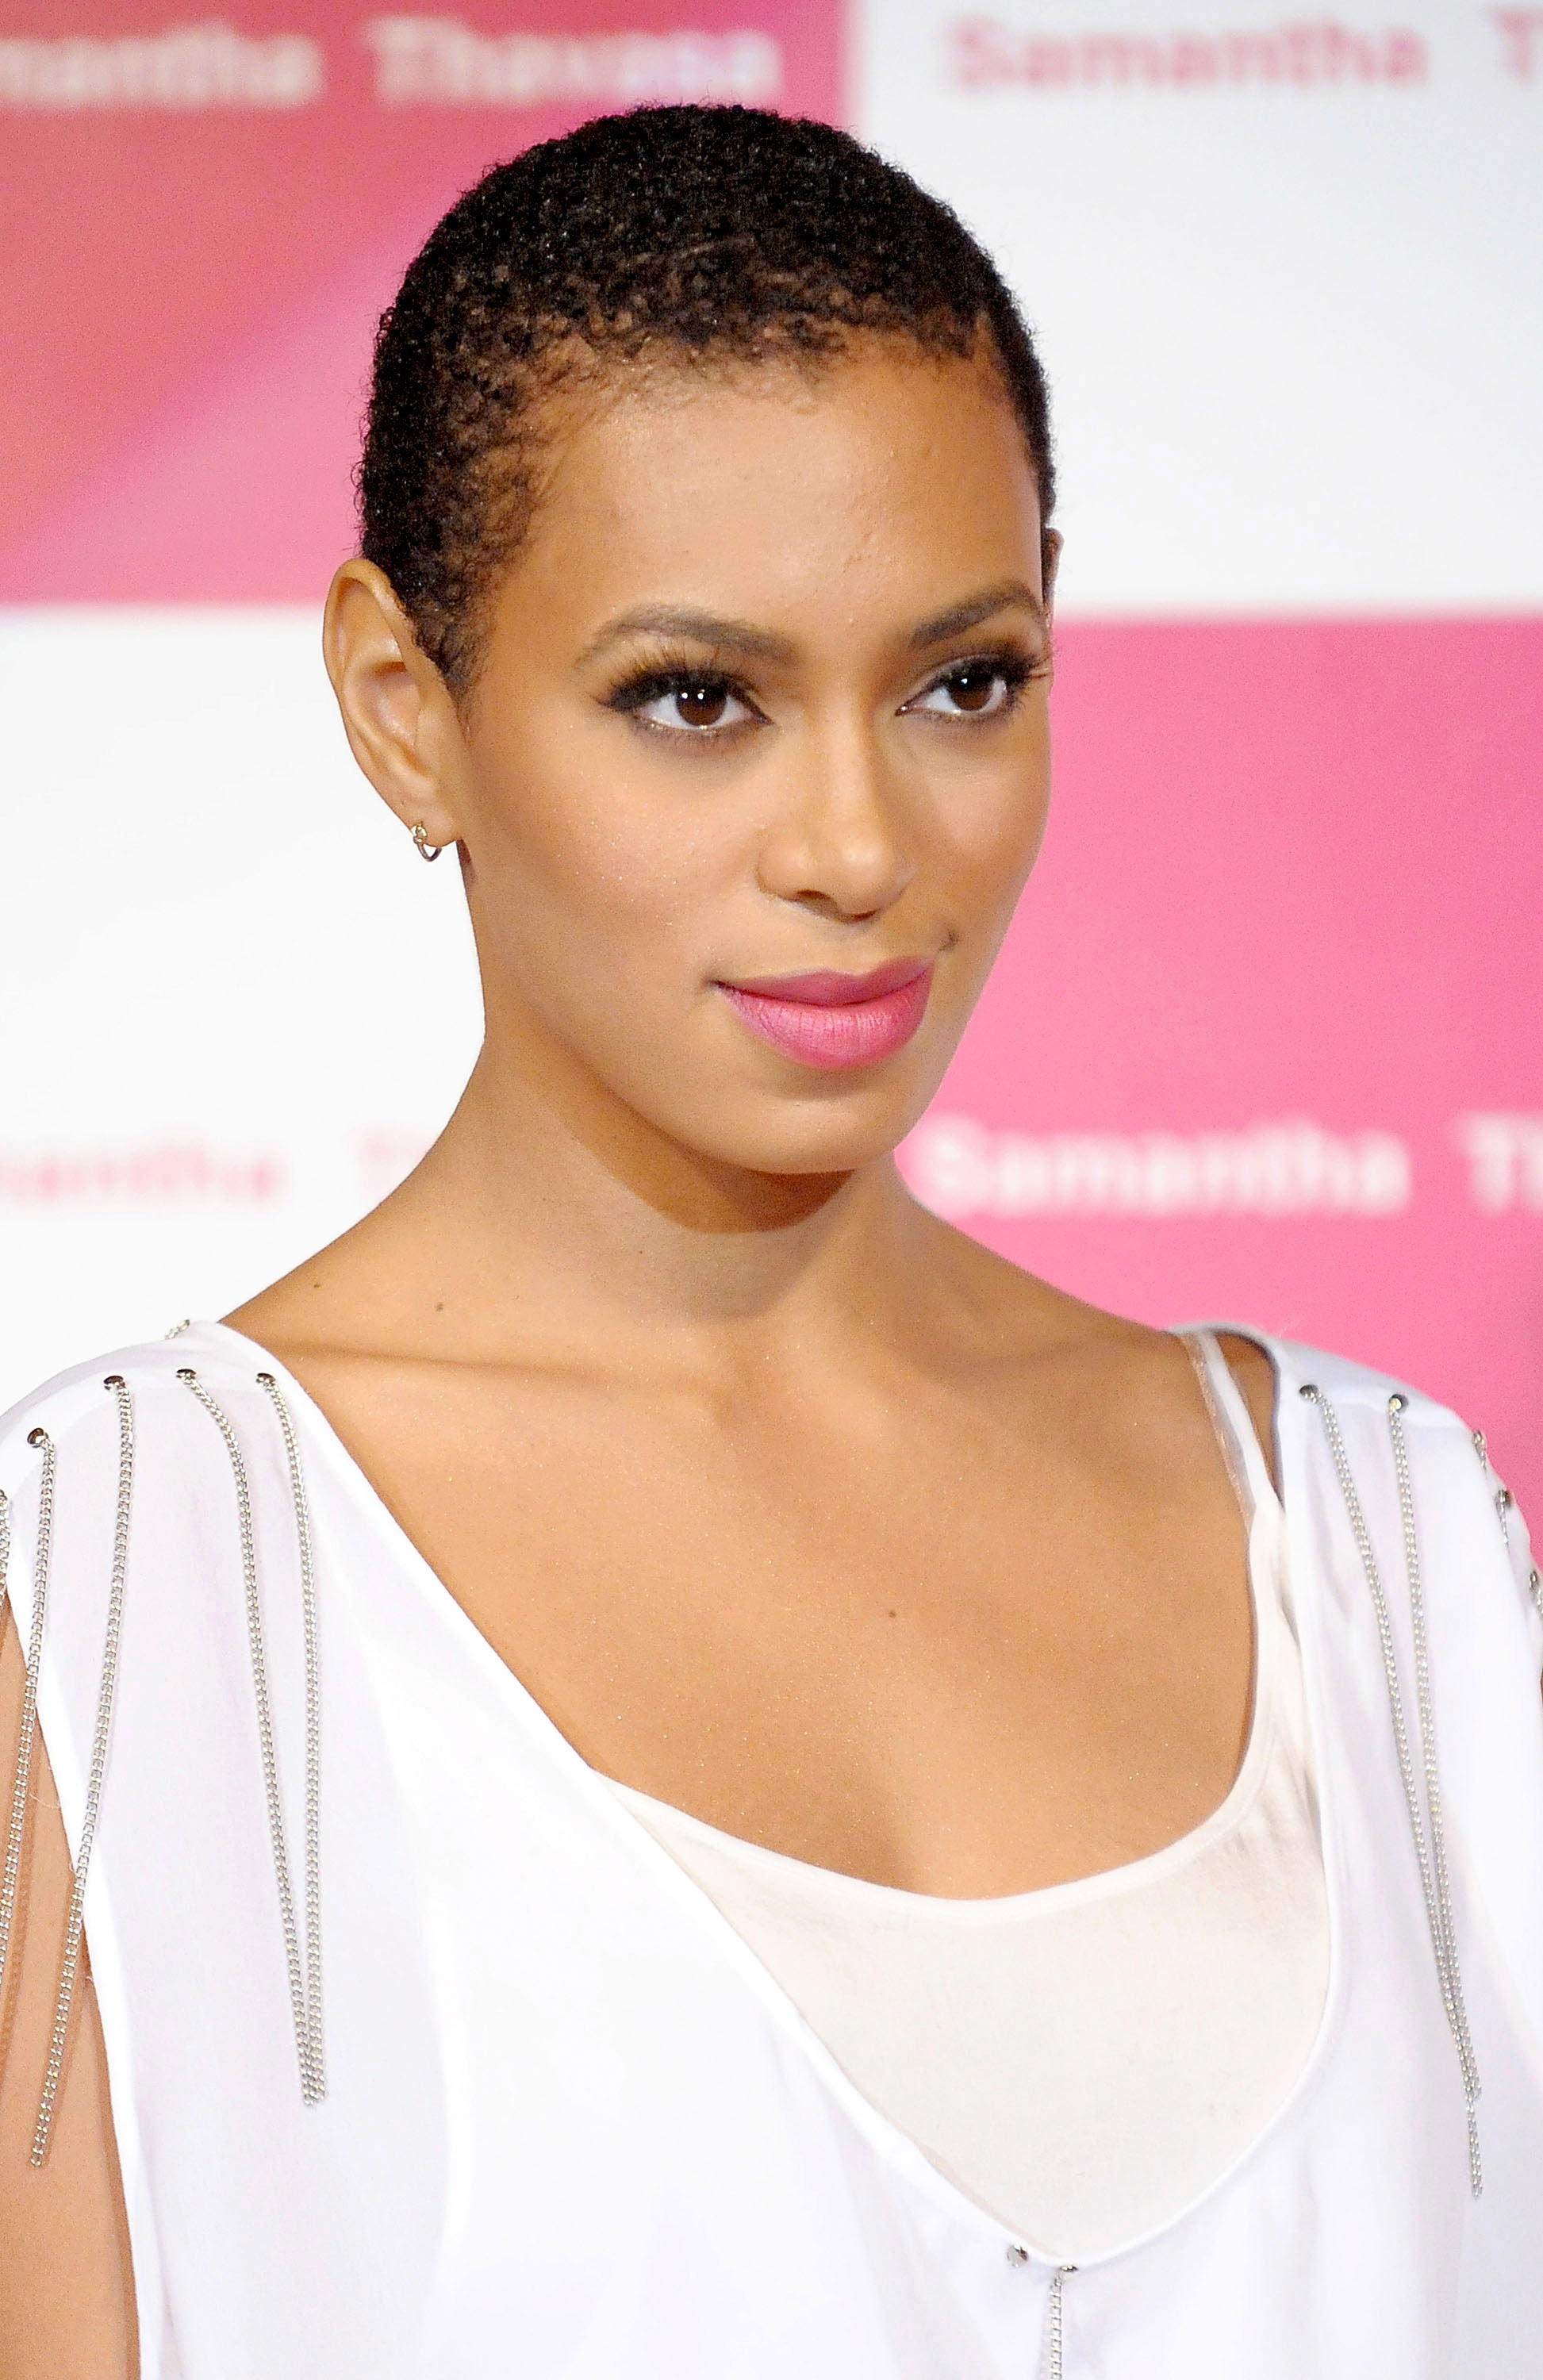 Short hairstyles for black women 9